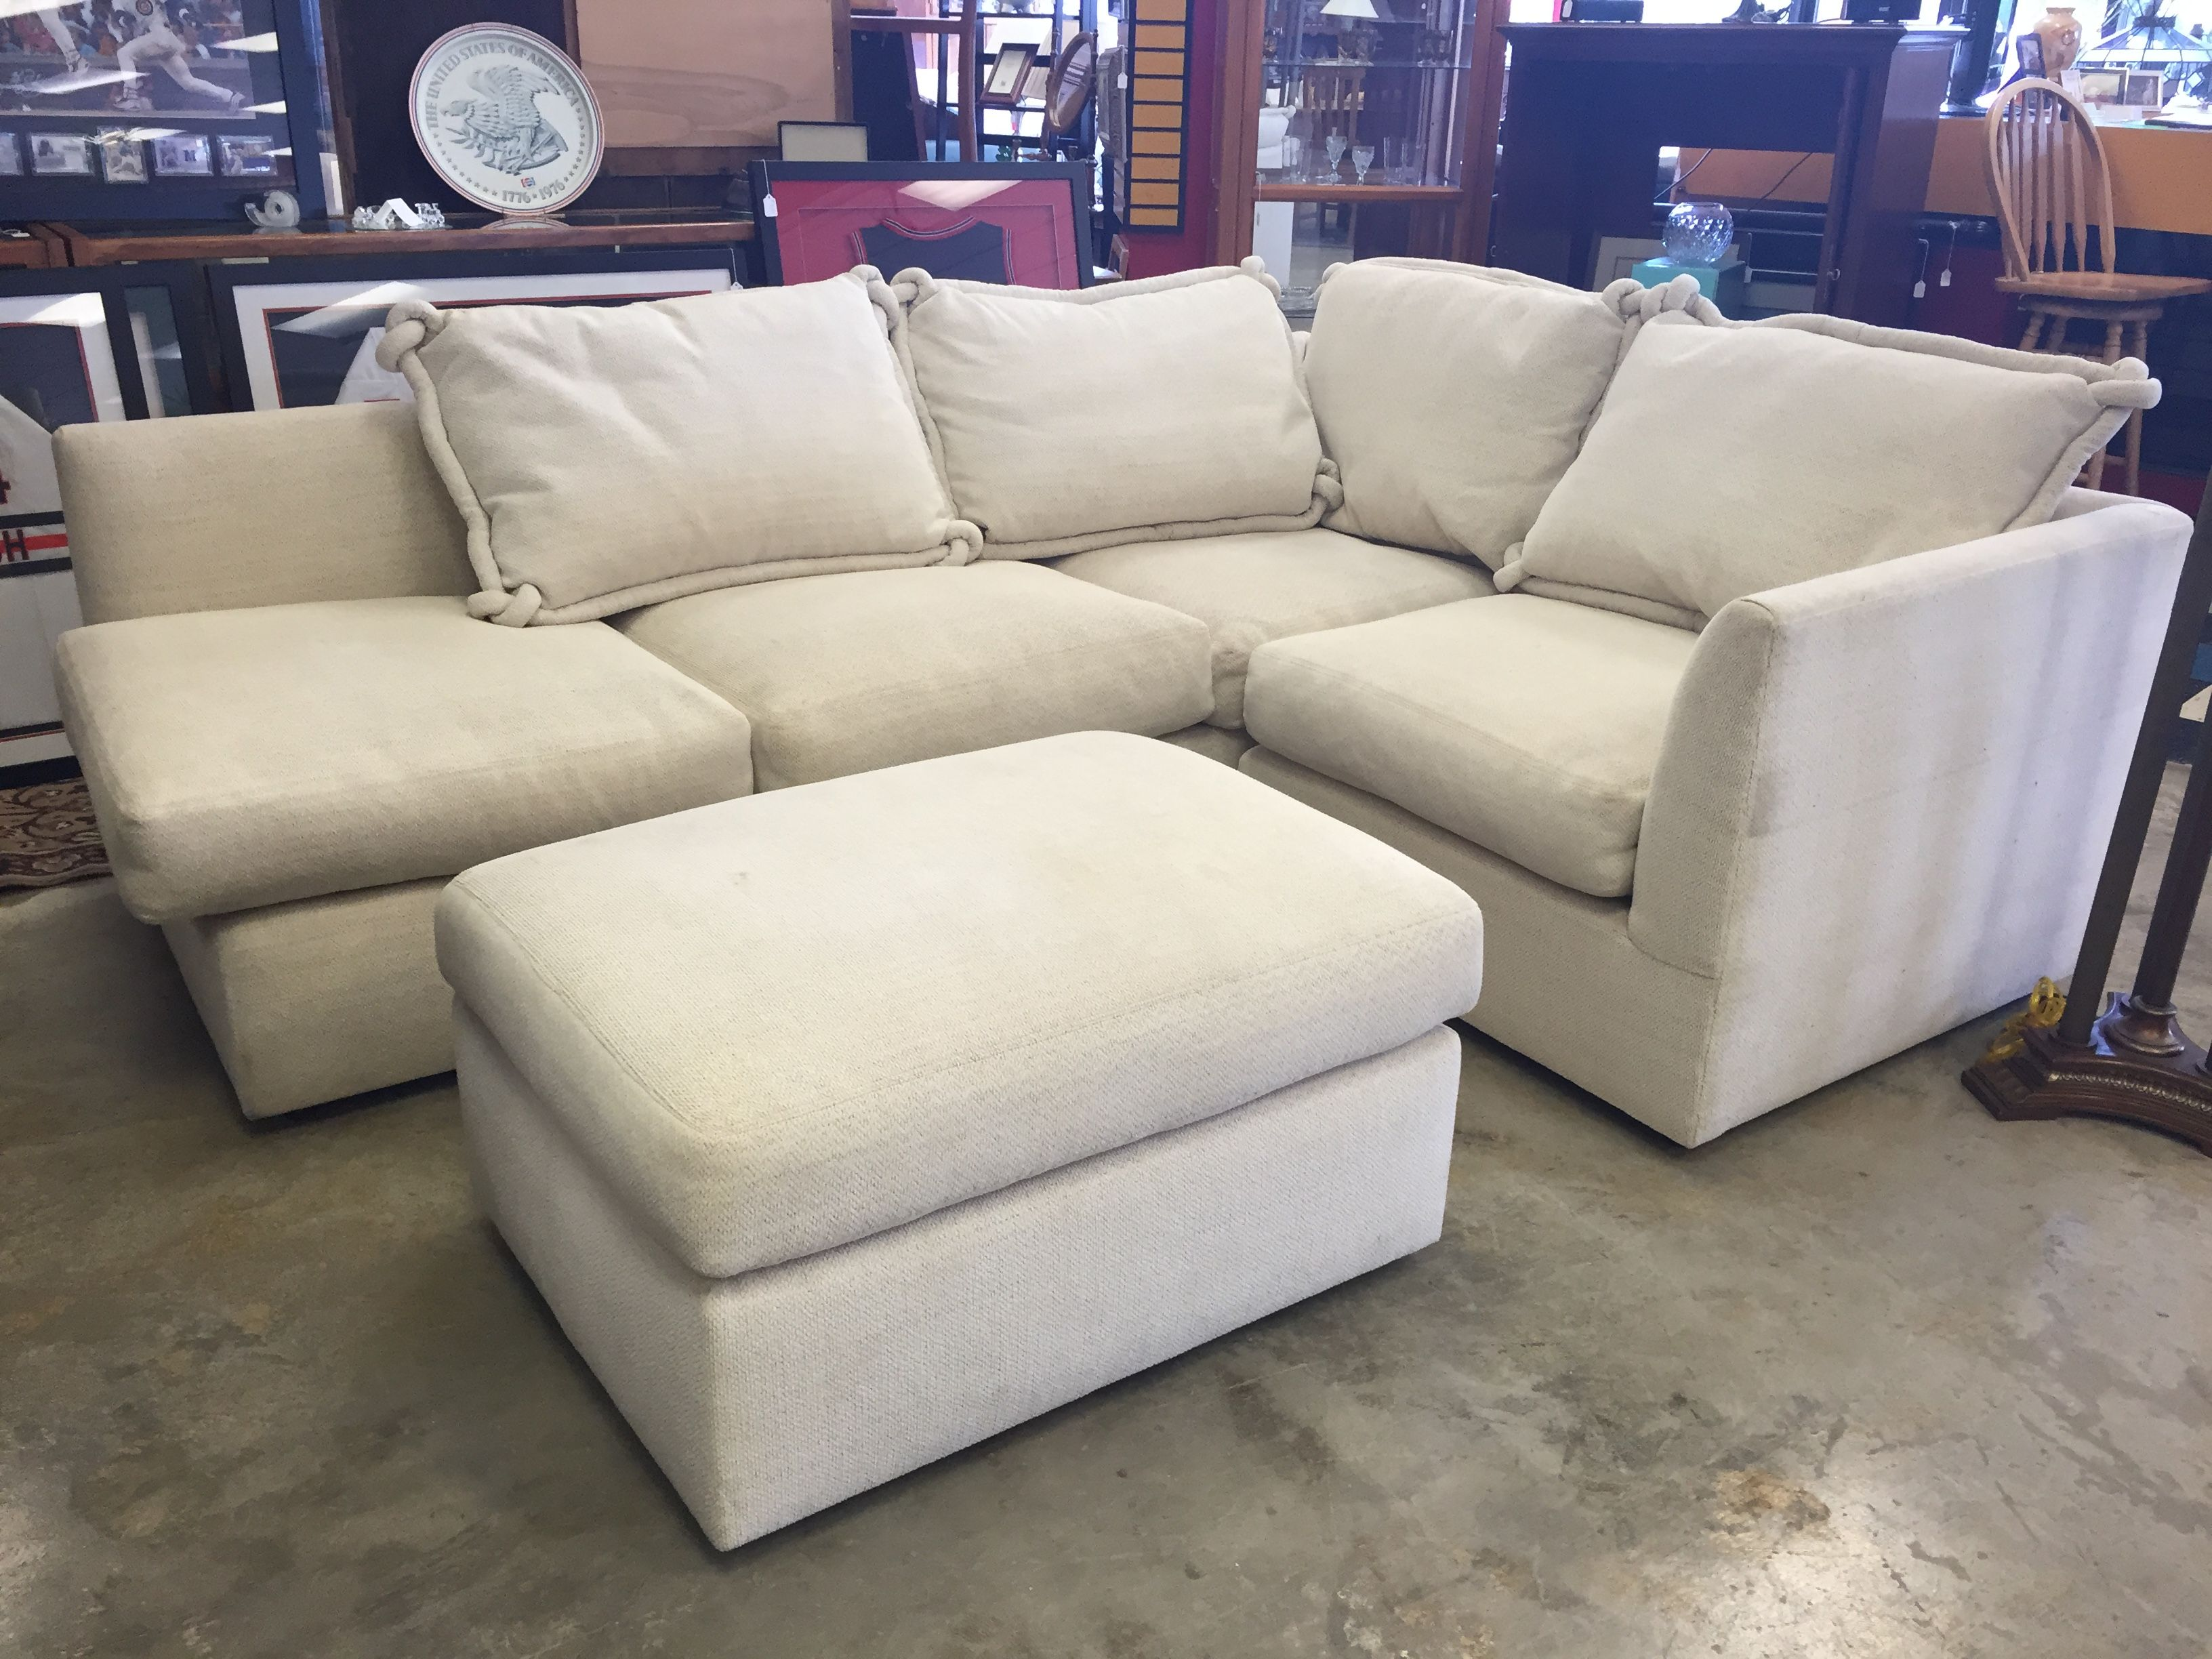 Surprising Kreiss White Sectional And Ottoman 695 Couch Forsale Beatyapartments Chair Design Images Beatyapartmentscom